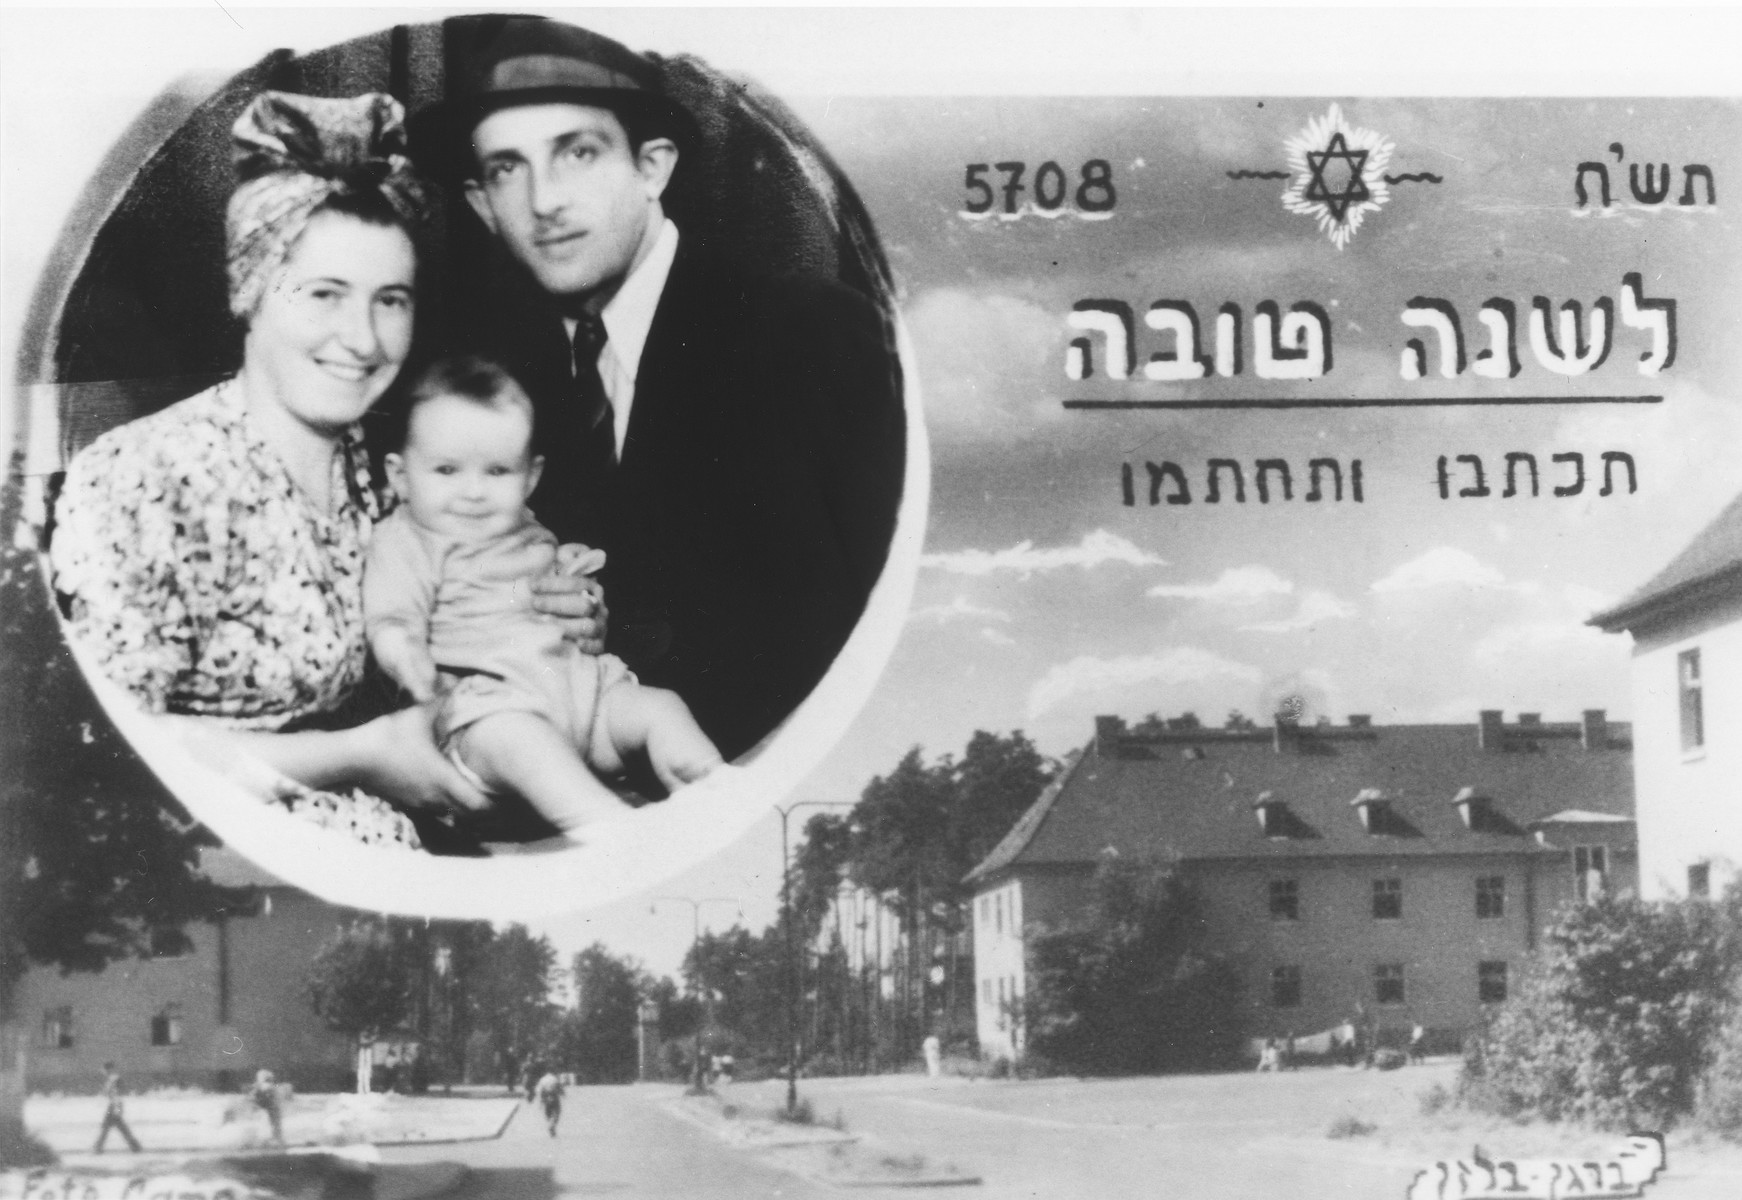 Personalized Jewish New Years card from the Goldner family in the Bergen-Belsen displaced persons camp.